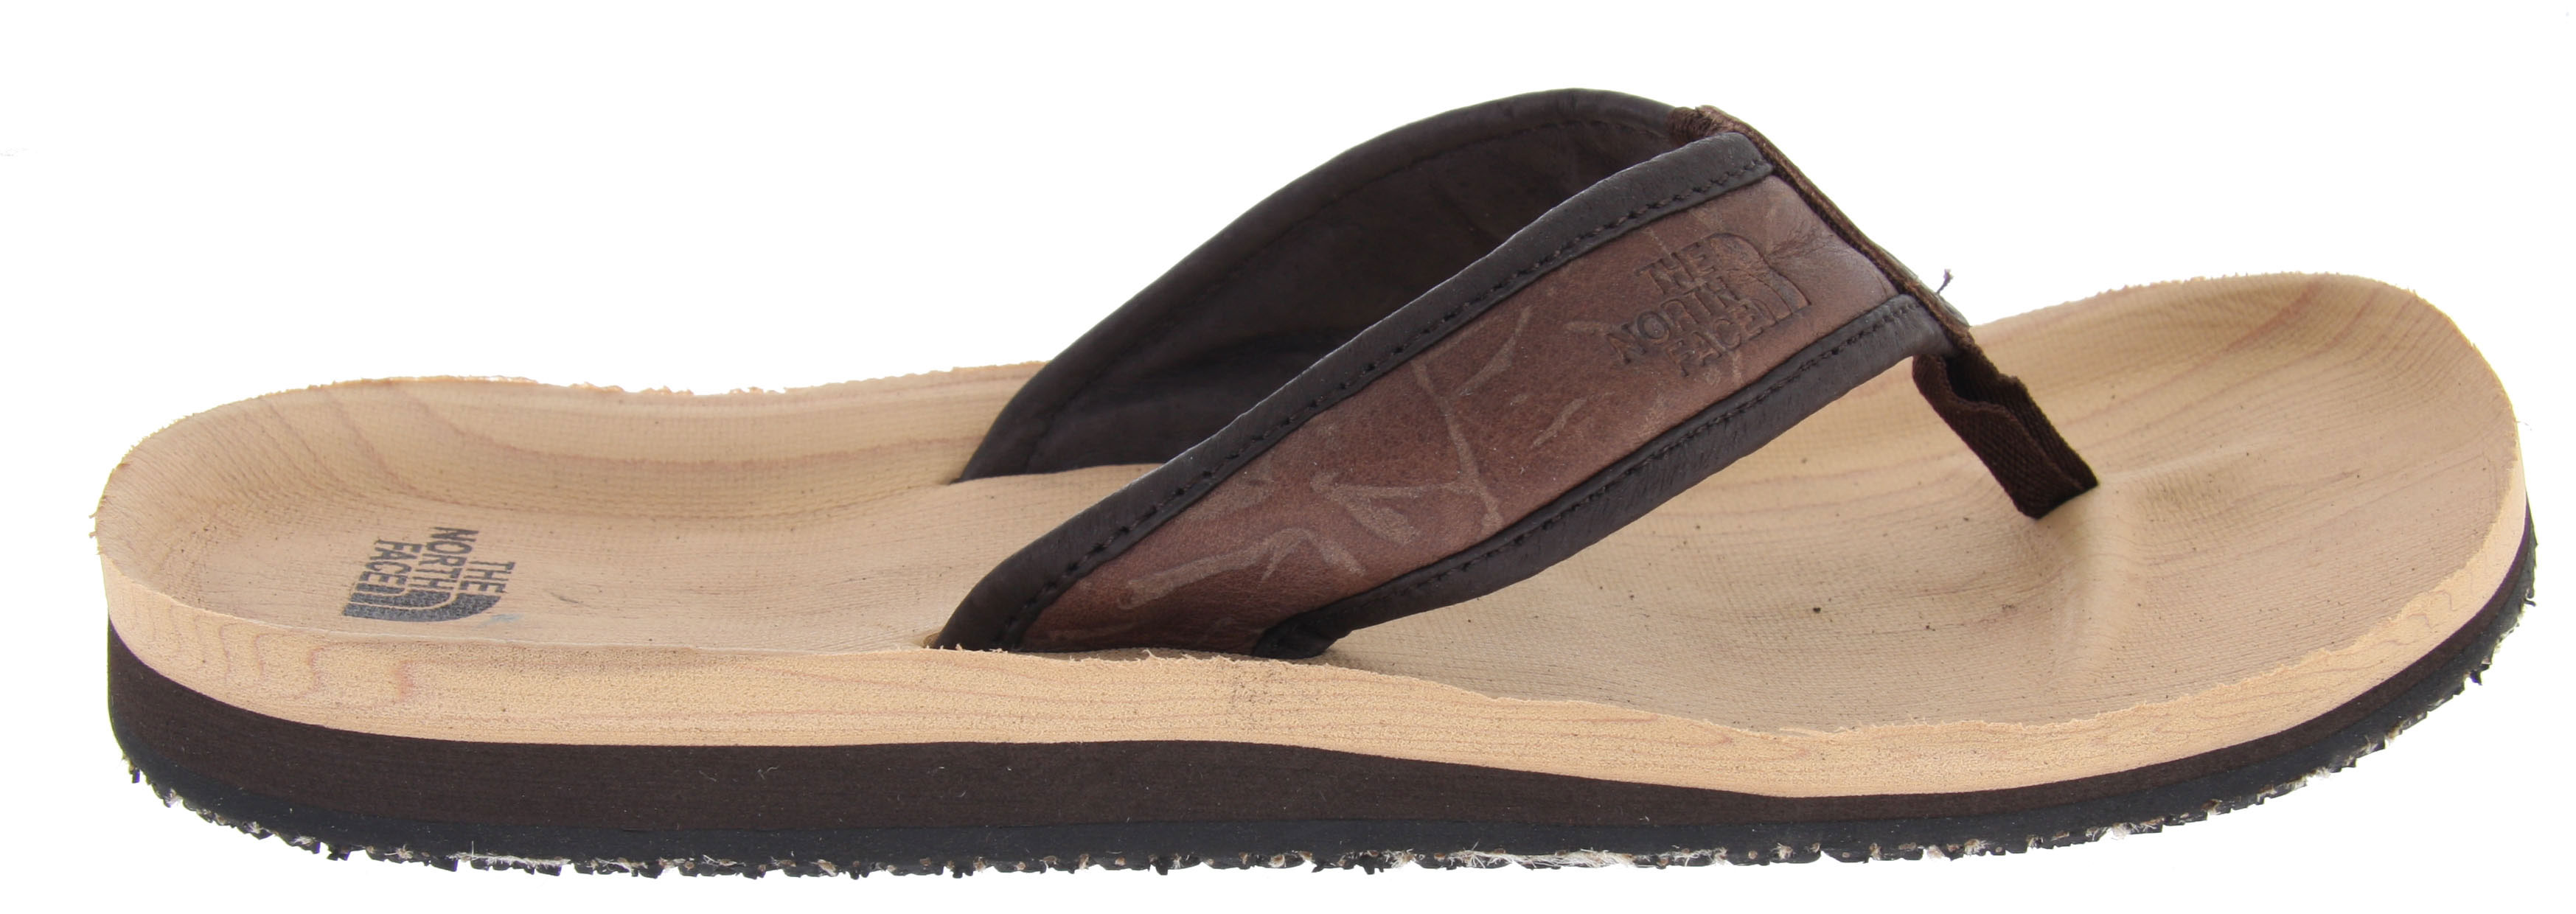 Surf With wood grain-inspired EVA footbed design, this The North Face Tree Point sandal blends a natural look with comfort and durability.Key Features of The North Face Tree Point Sandals: Distressed, full-grain leather strap Soft, comfortable nubuck leather strap lining Contoured, compression-molded footbed Wood-grain-inspired EVA footbed treatment Die-cut EVA midsole with enhanced arch support Burlap-infused durable rubber outsole - $25.95